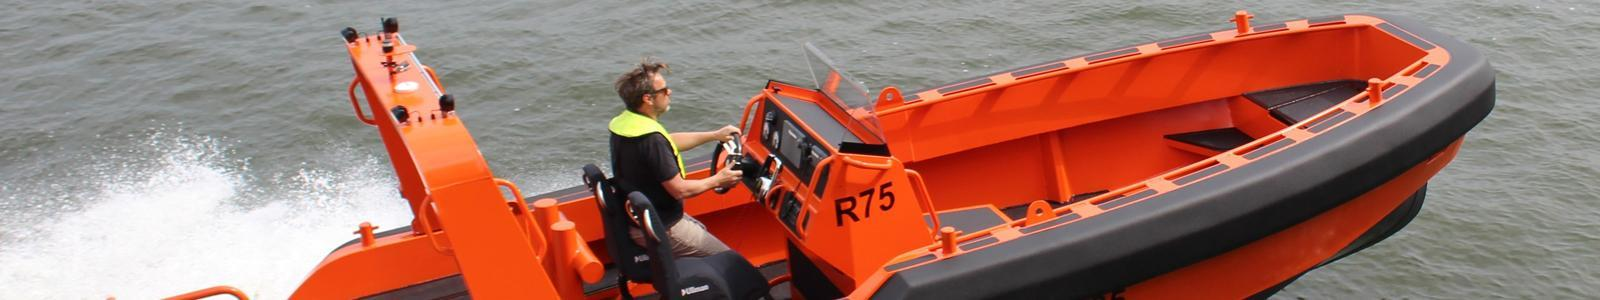 Fenders for fast, light weight workboats